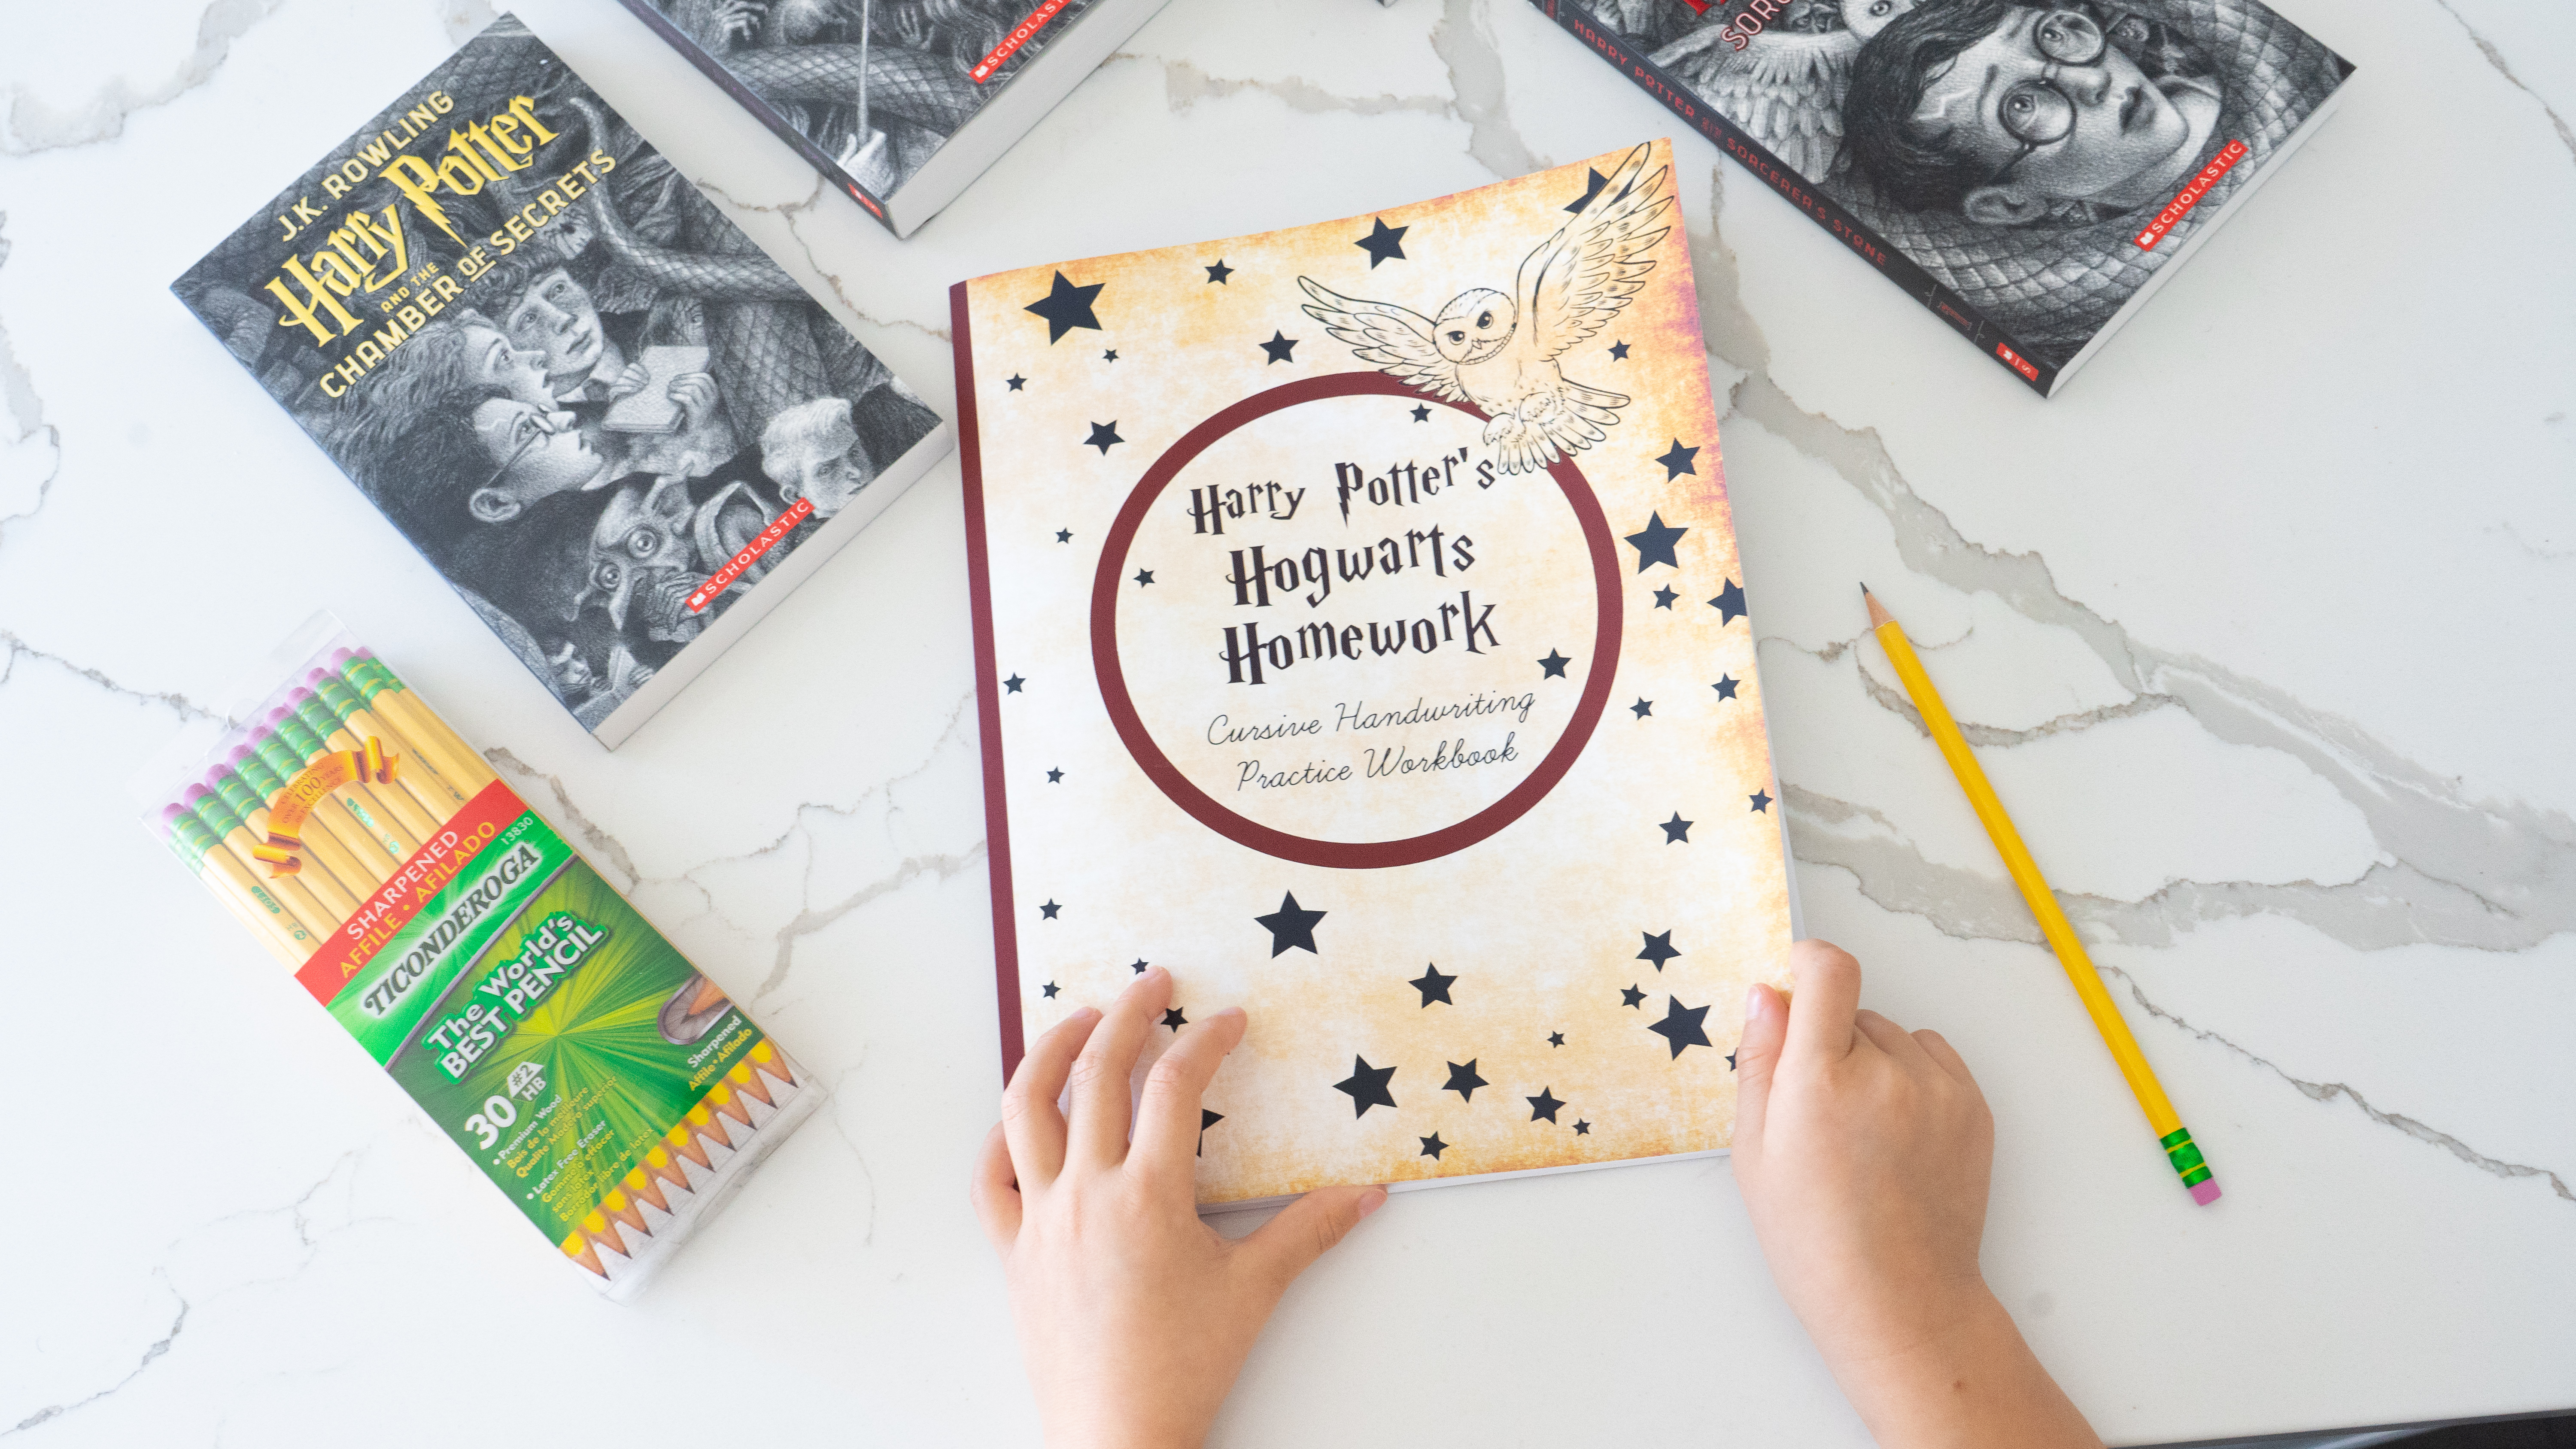 Amazon-Back to school-deals-Harry Potter-Cursive-Made Easier-School Year's Resolutions Made Easier with Amazon